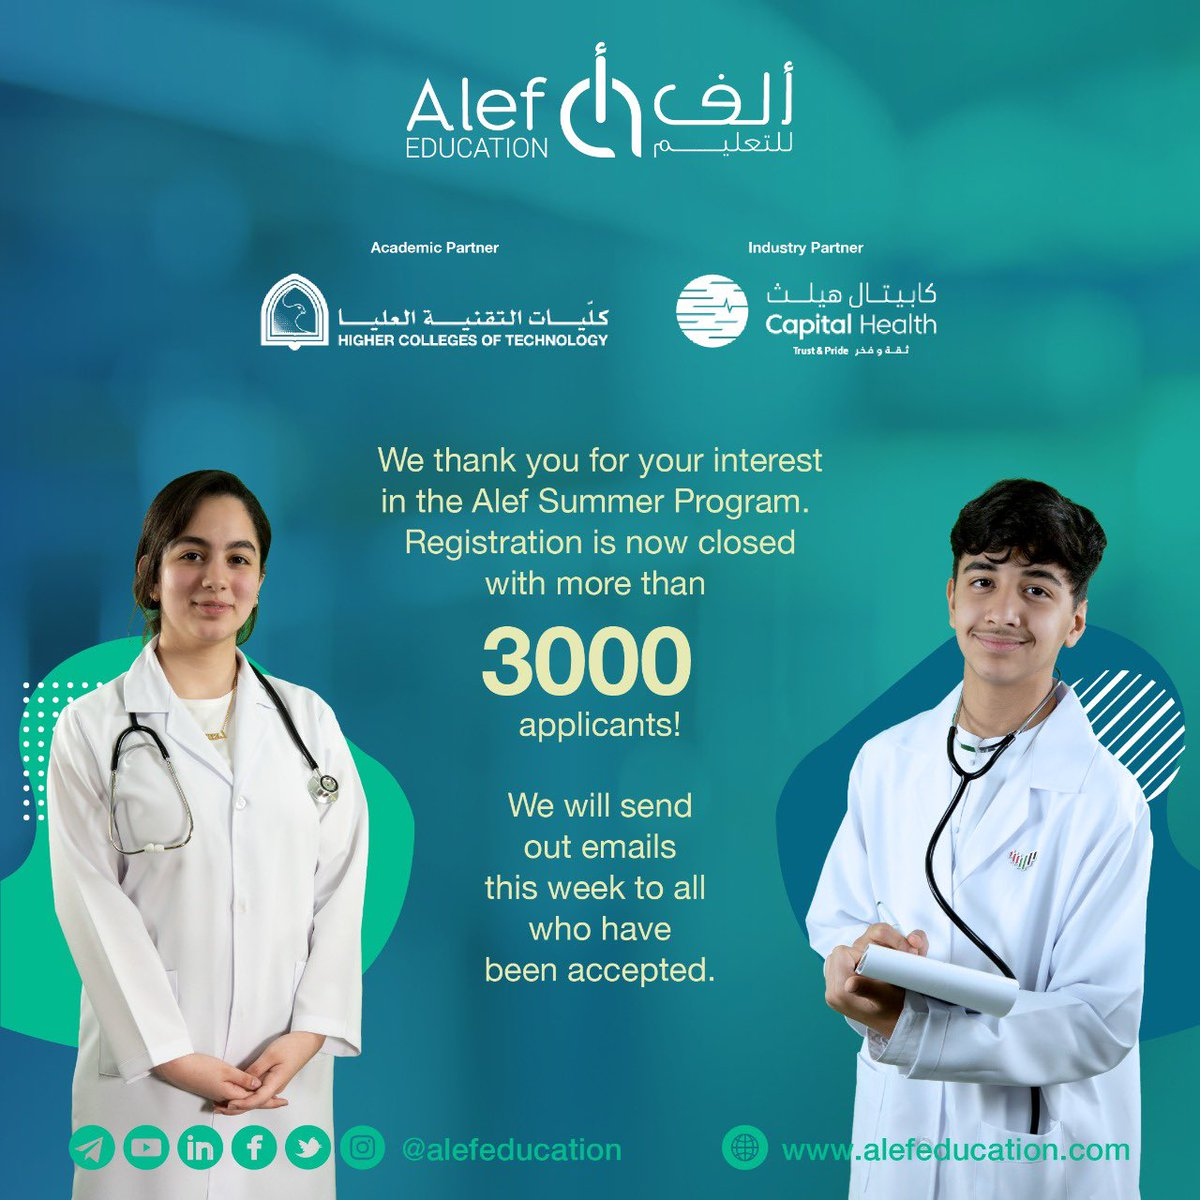 We thank you for your interest in the Alef Summer Program   Registration is now closed with more than 3000 applicants!  We will send out emails this week to all who have been accepted.  #LearningDoesnotStop #DistanceLearning https://t.co/0lvowmOoxJ